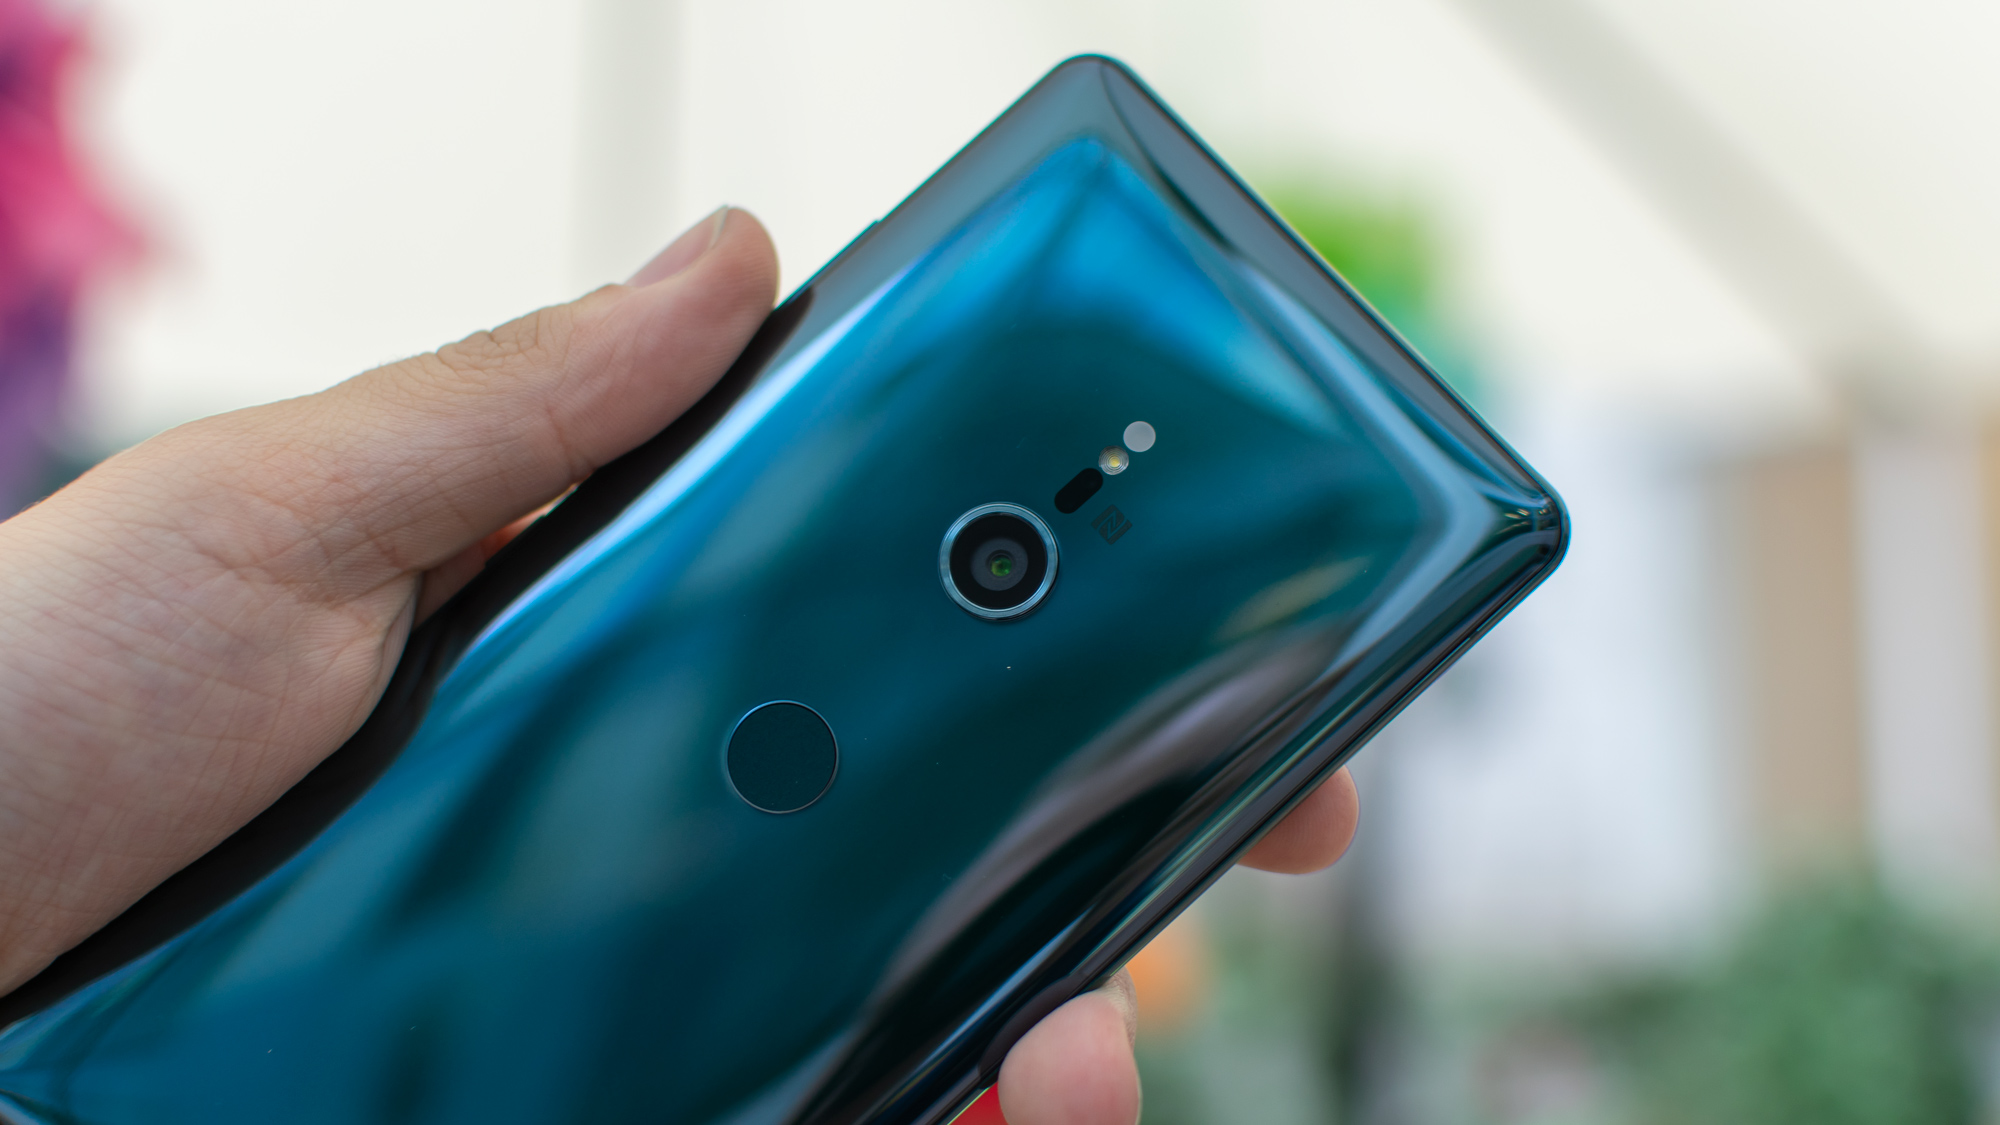 Sony Xperia XZ3 now official with smaller bezels and 6-inch display